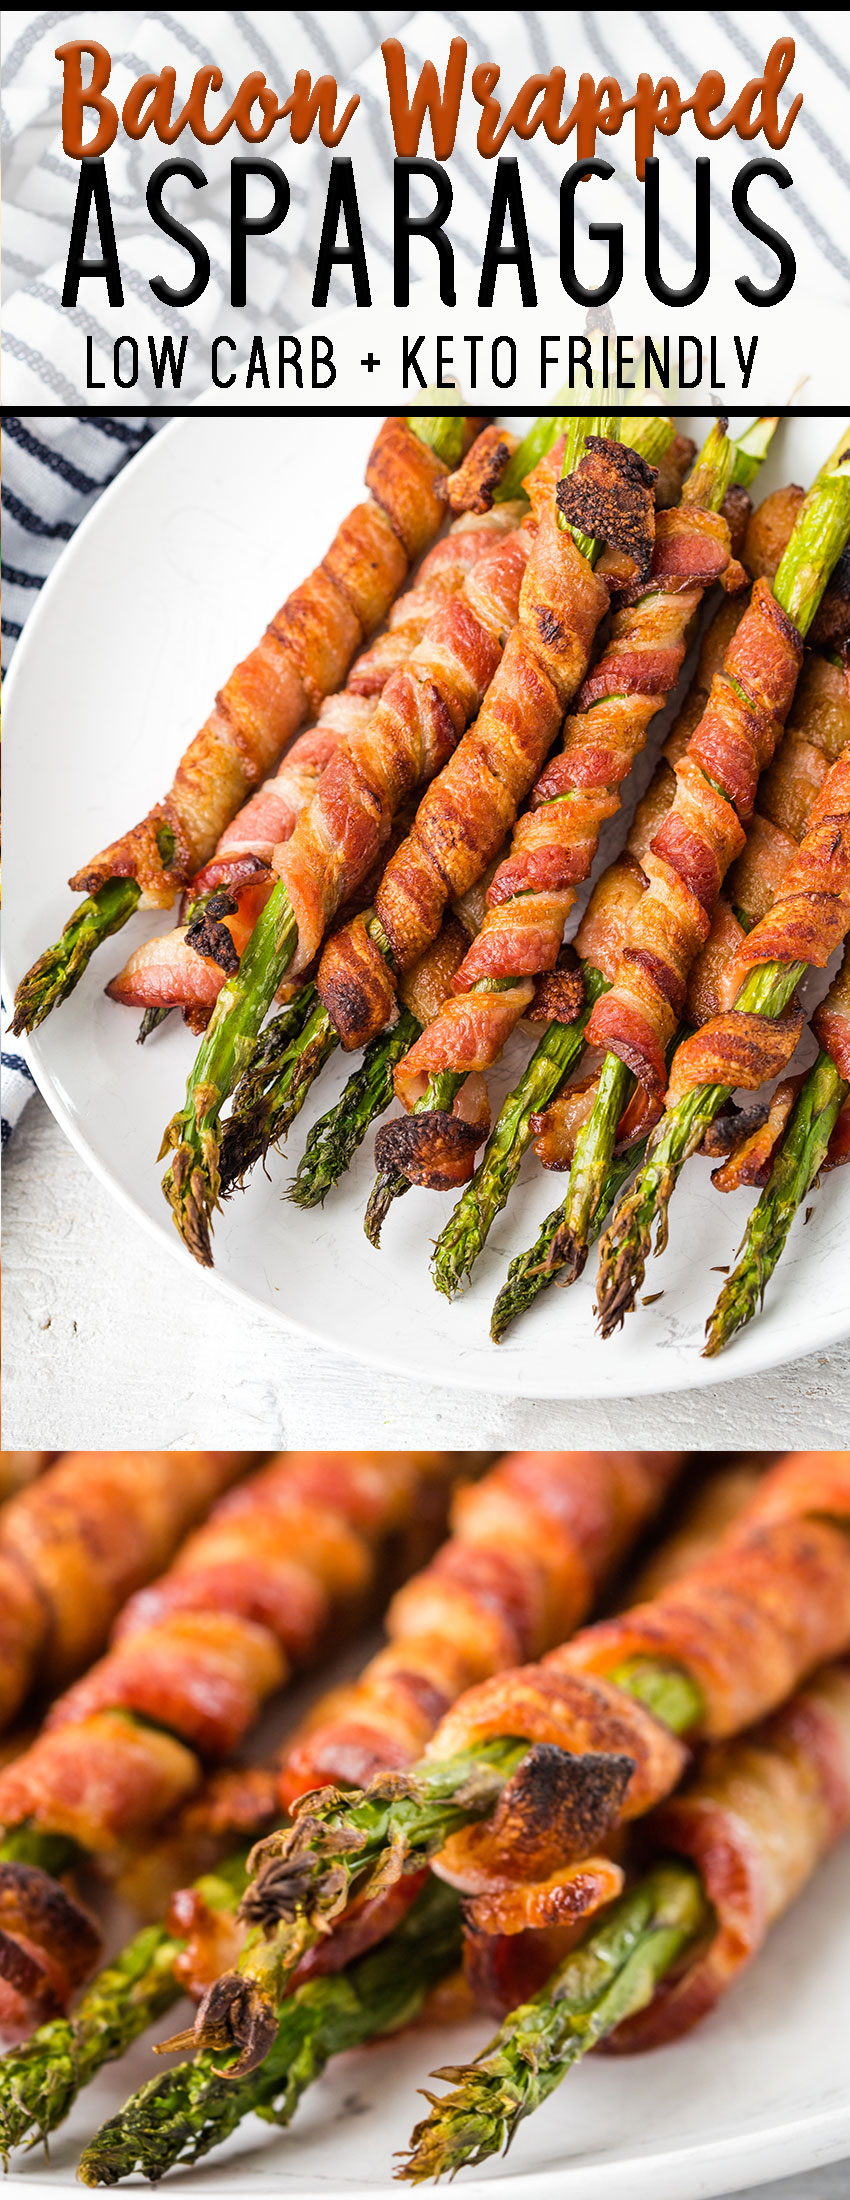 How to make bacon wrapped asparagus perfect for the keto diet